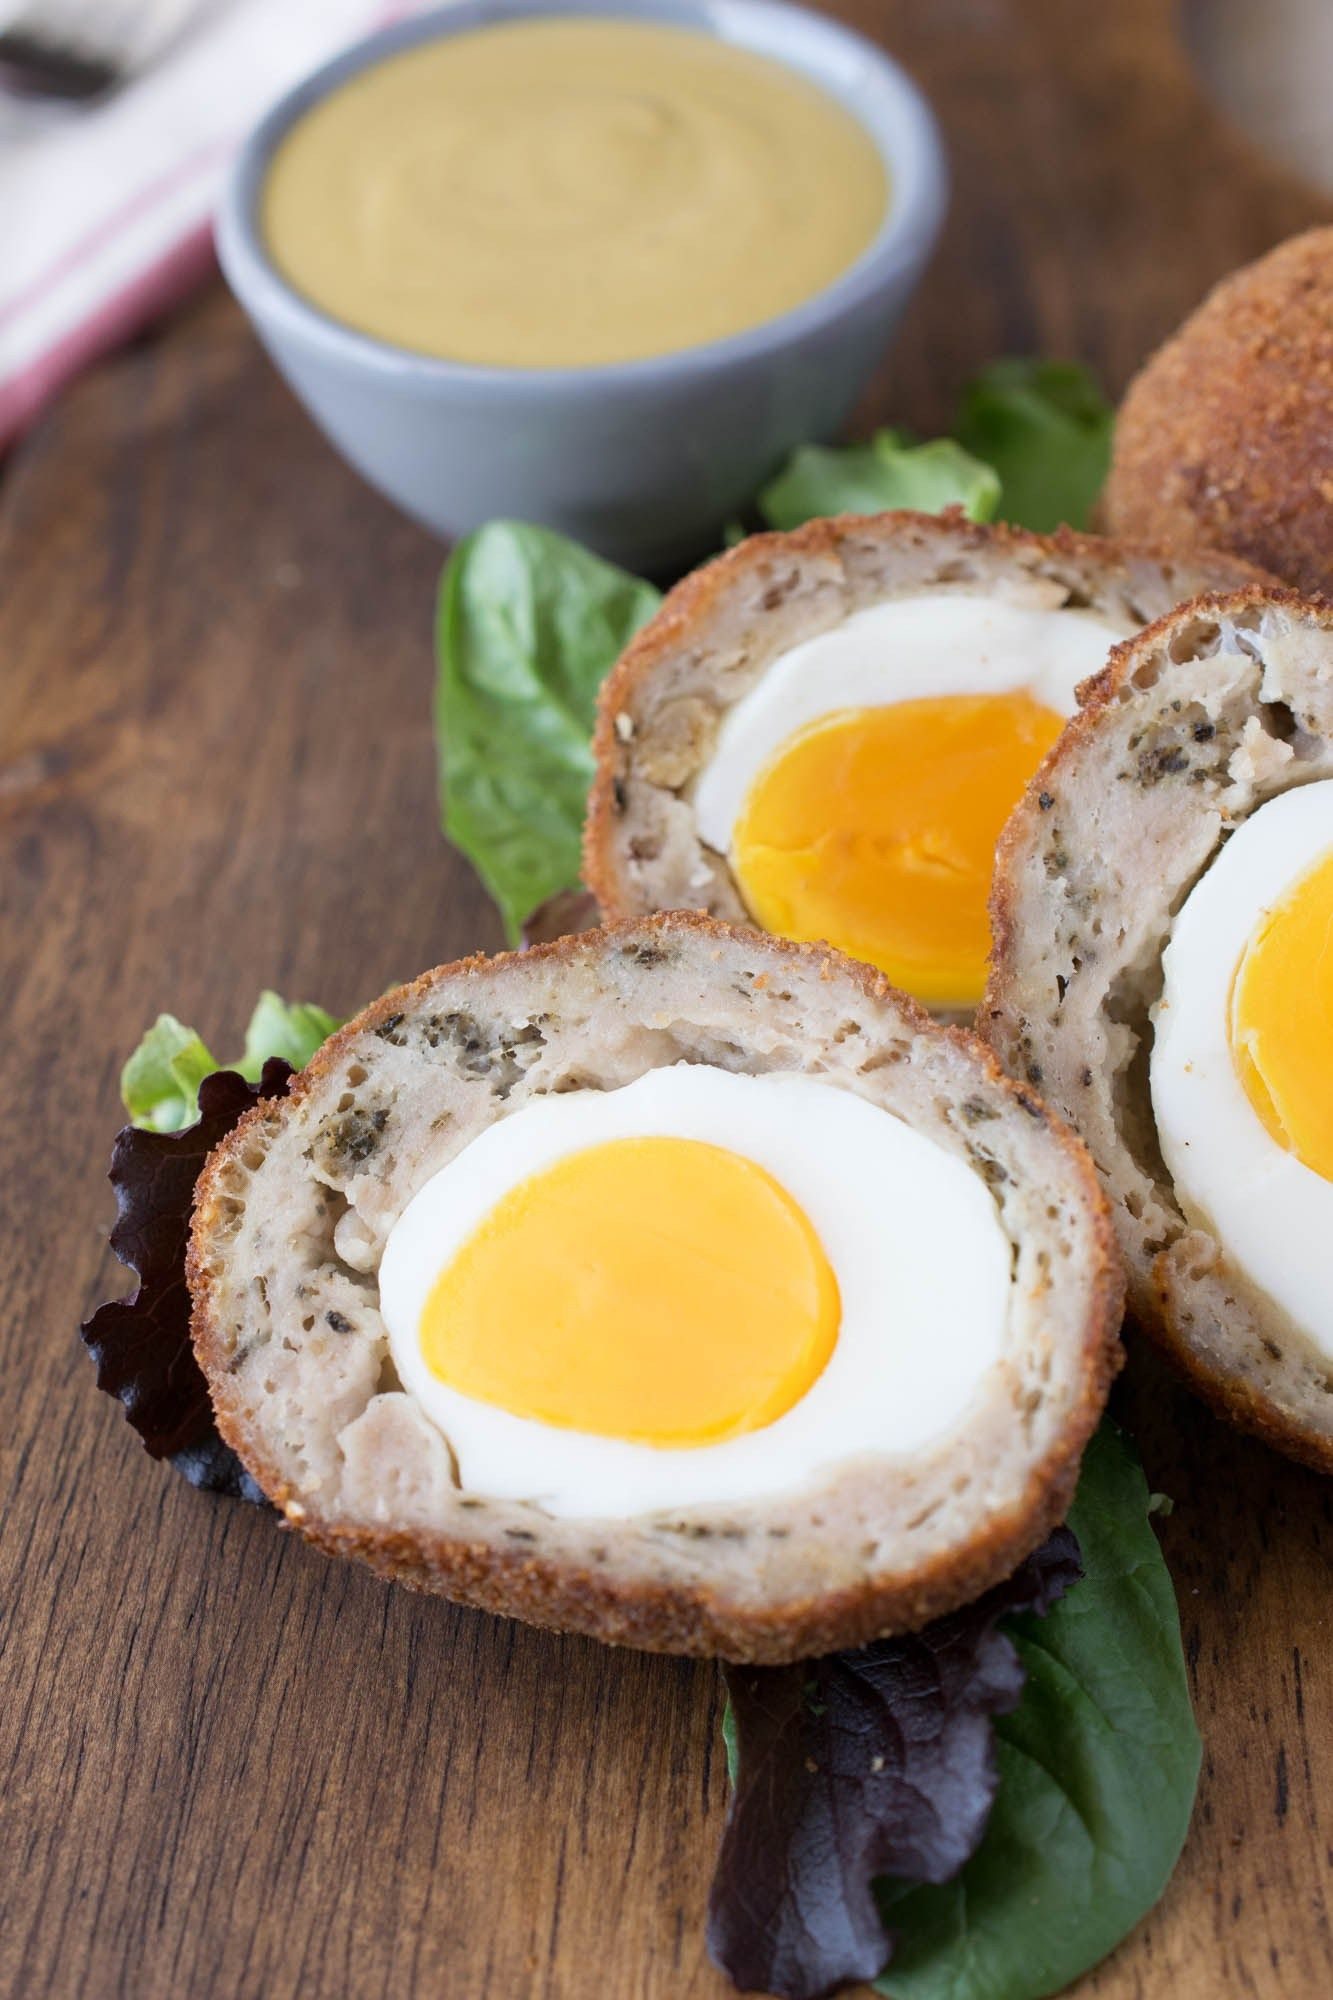 55d960195ae40d851a094ab0f4004654 - Scotch Eggs Better Homes And Gardens